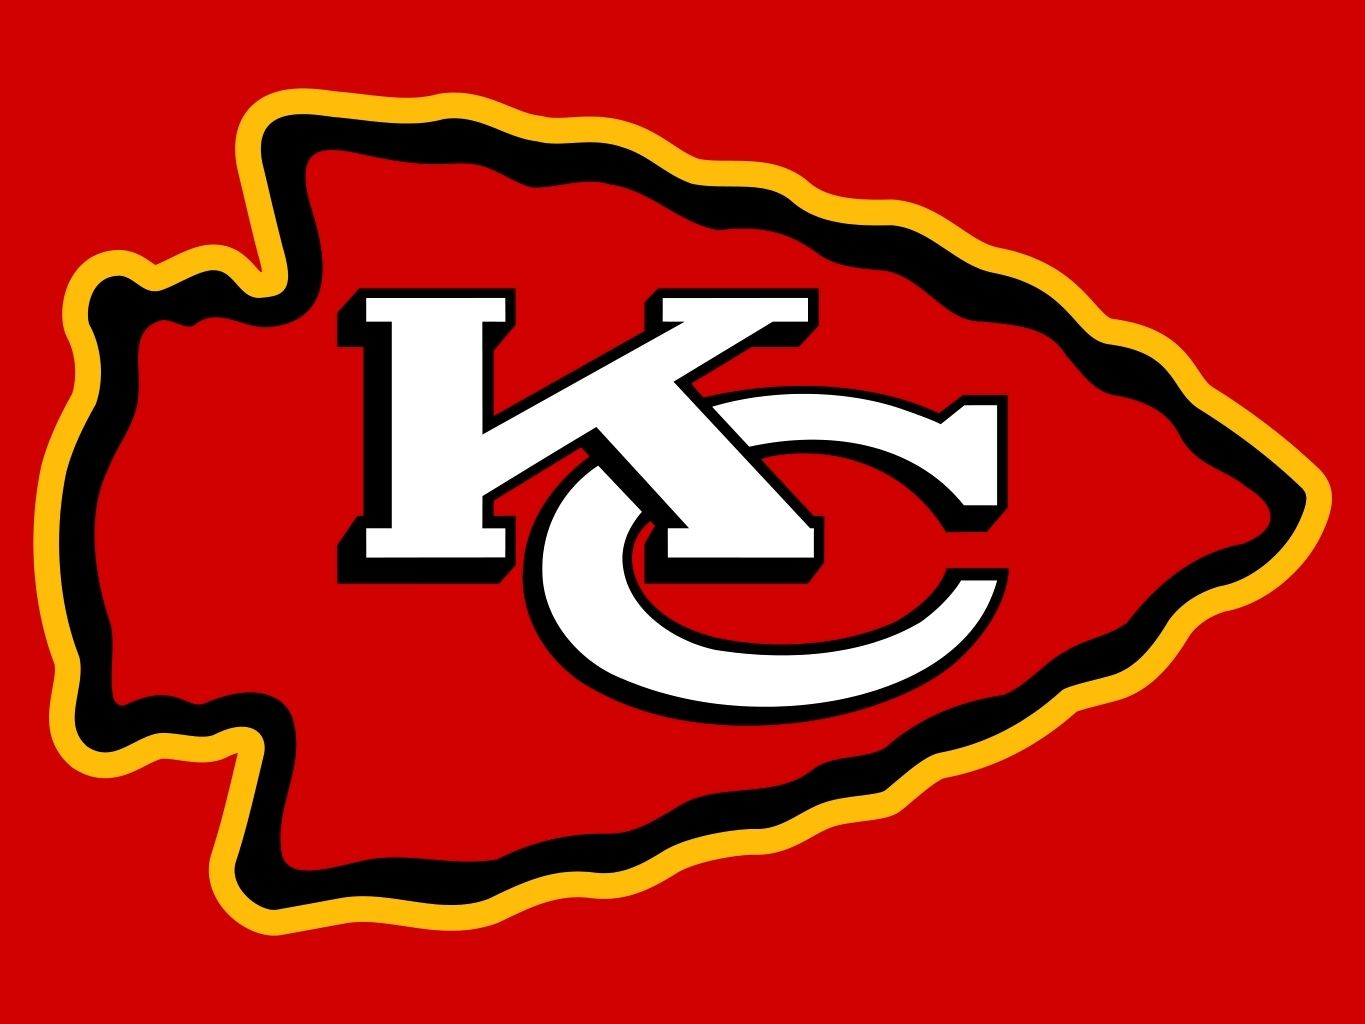 Pin By Adao Casares On Nfl Colors Kansas City Chiefs Logo Chiefs Logo Kansas City Chiefs